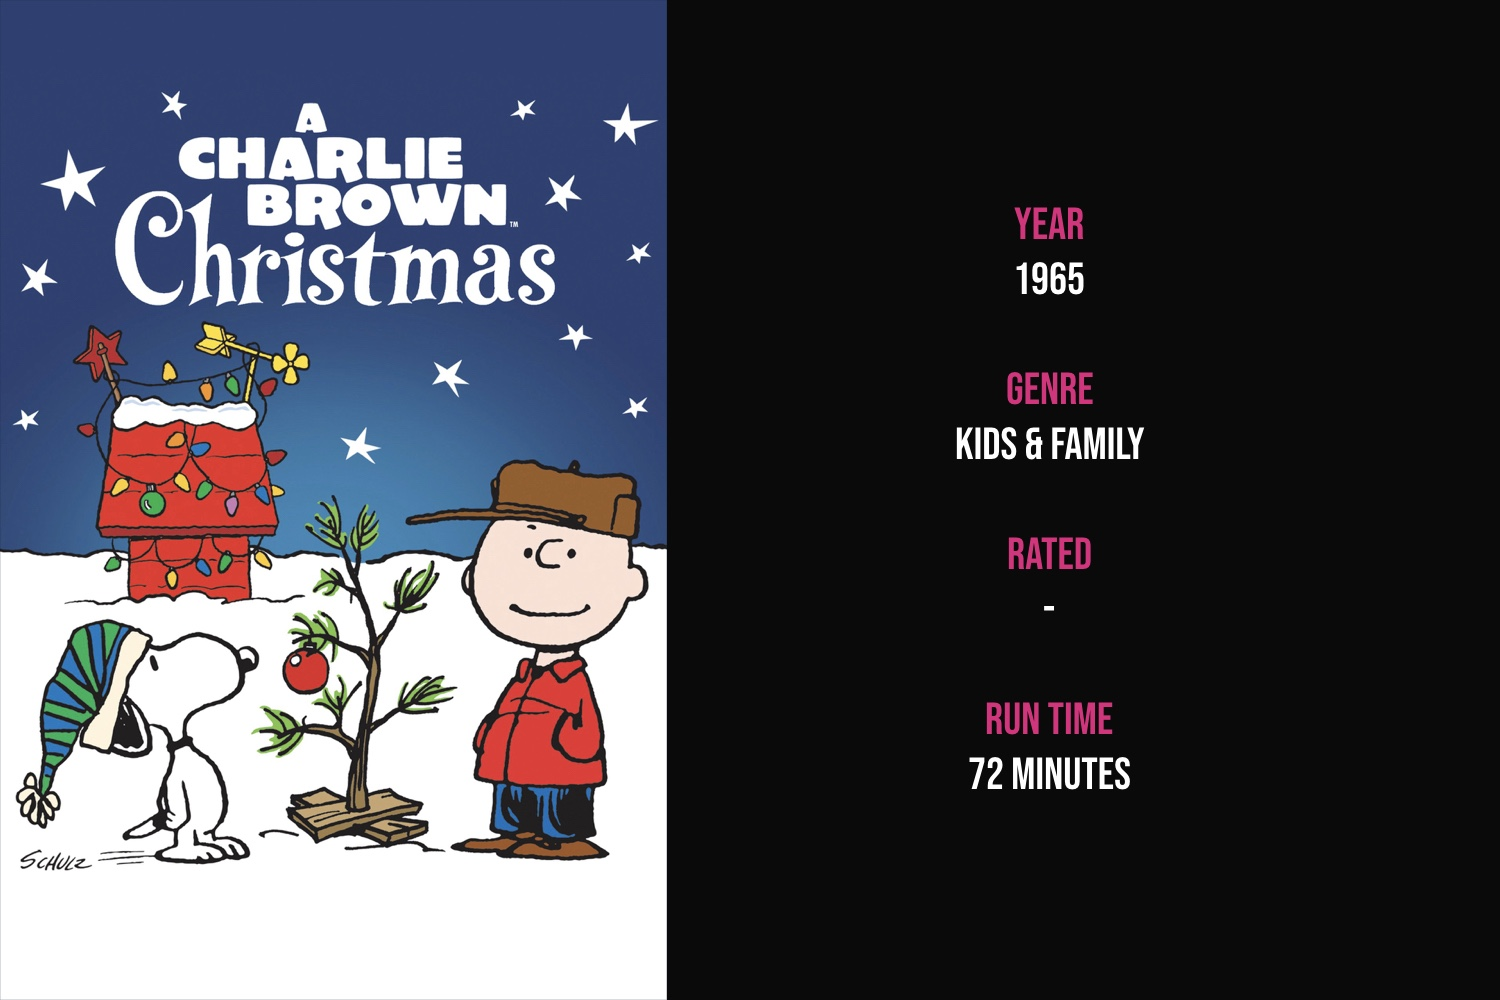 A Charlie Brown Christmas - Depressed over the commercialization of Christmas and his inability to understand what Christmas is about, Charlie Brown directs a holiday play and ultimately changes his mood.iTunes | Amazon